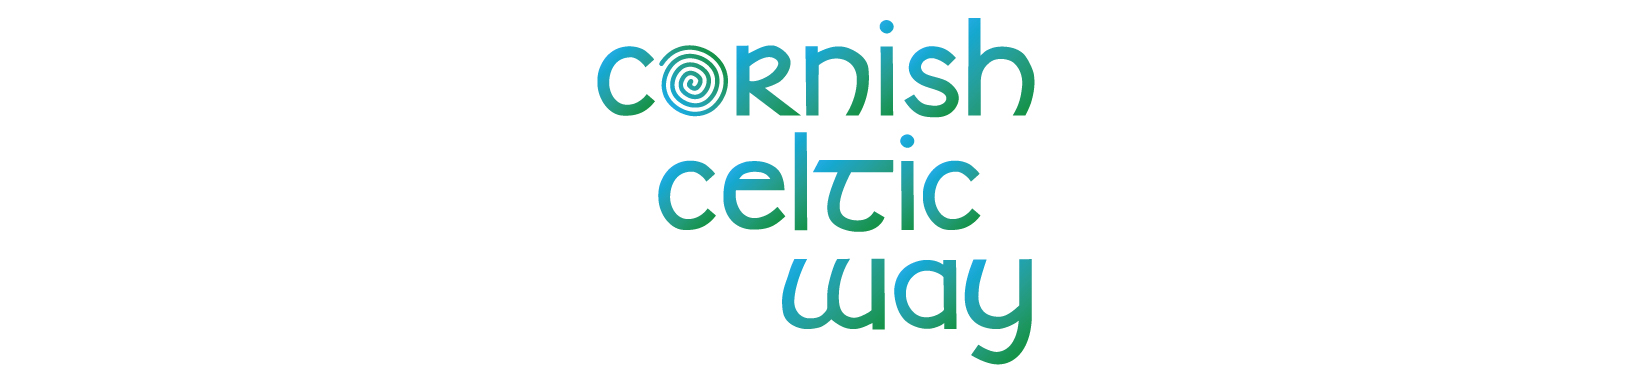 cornish celtic way title logo image